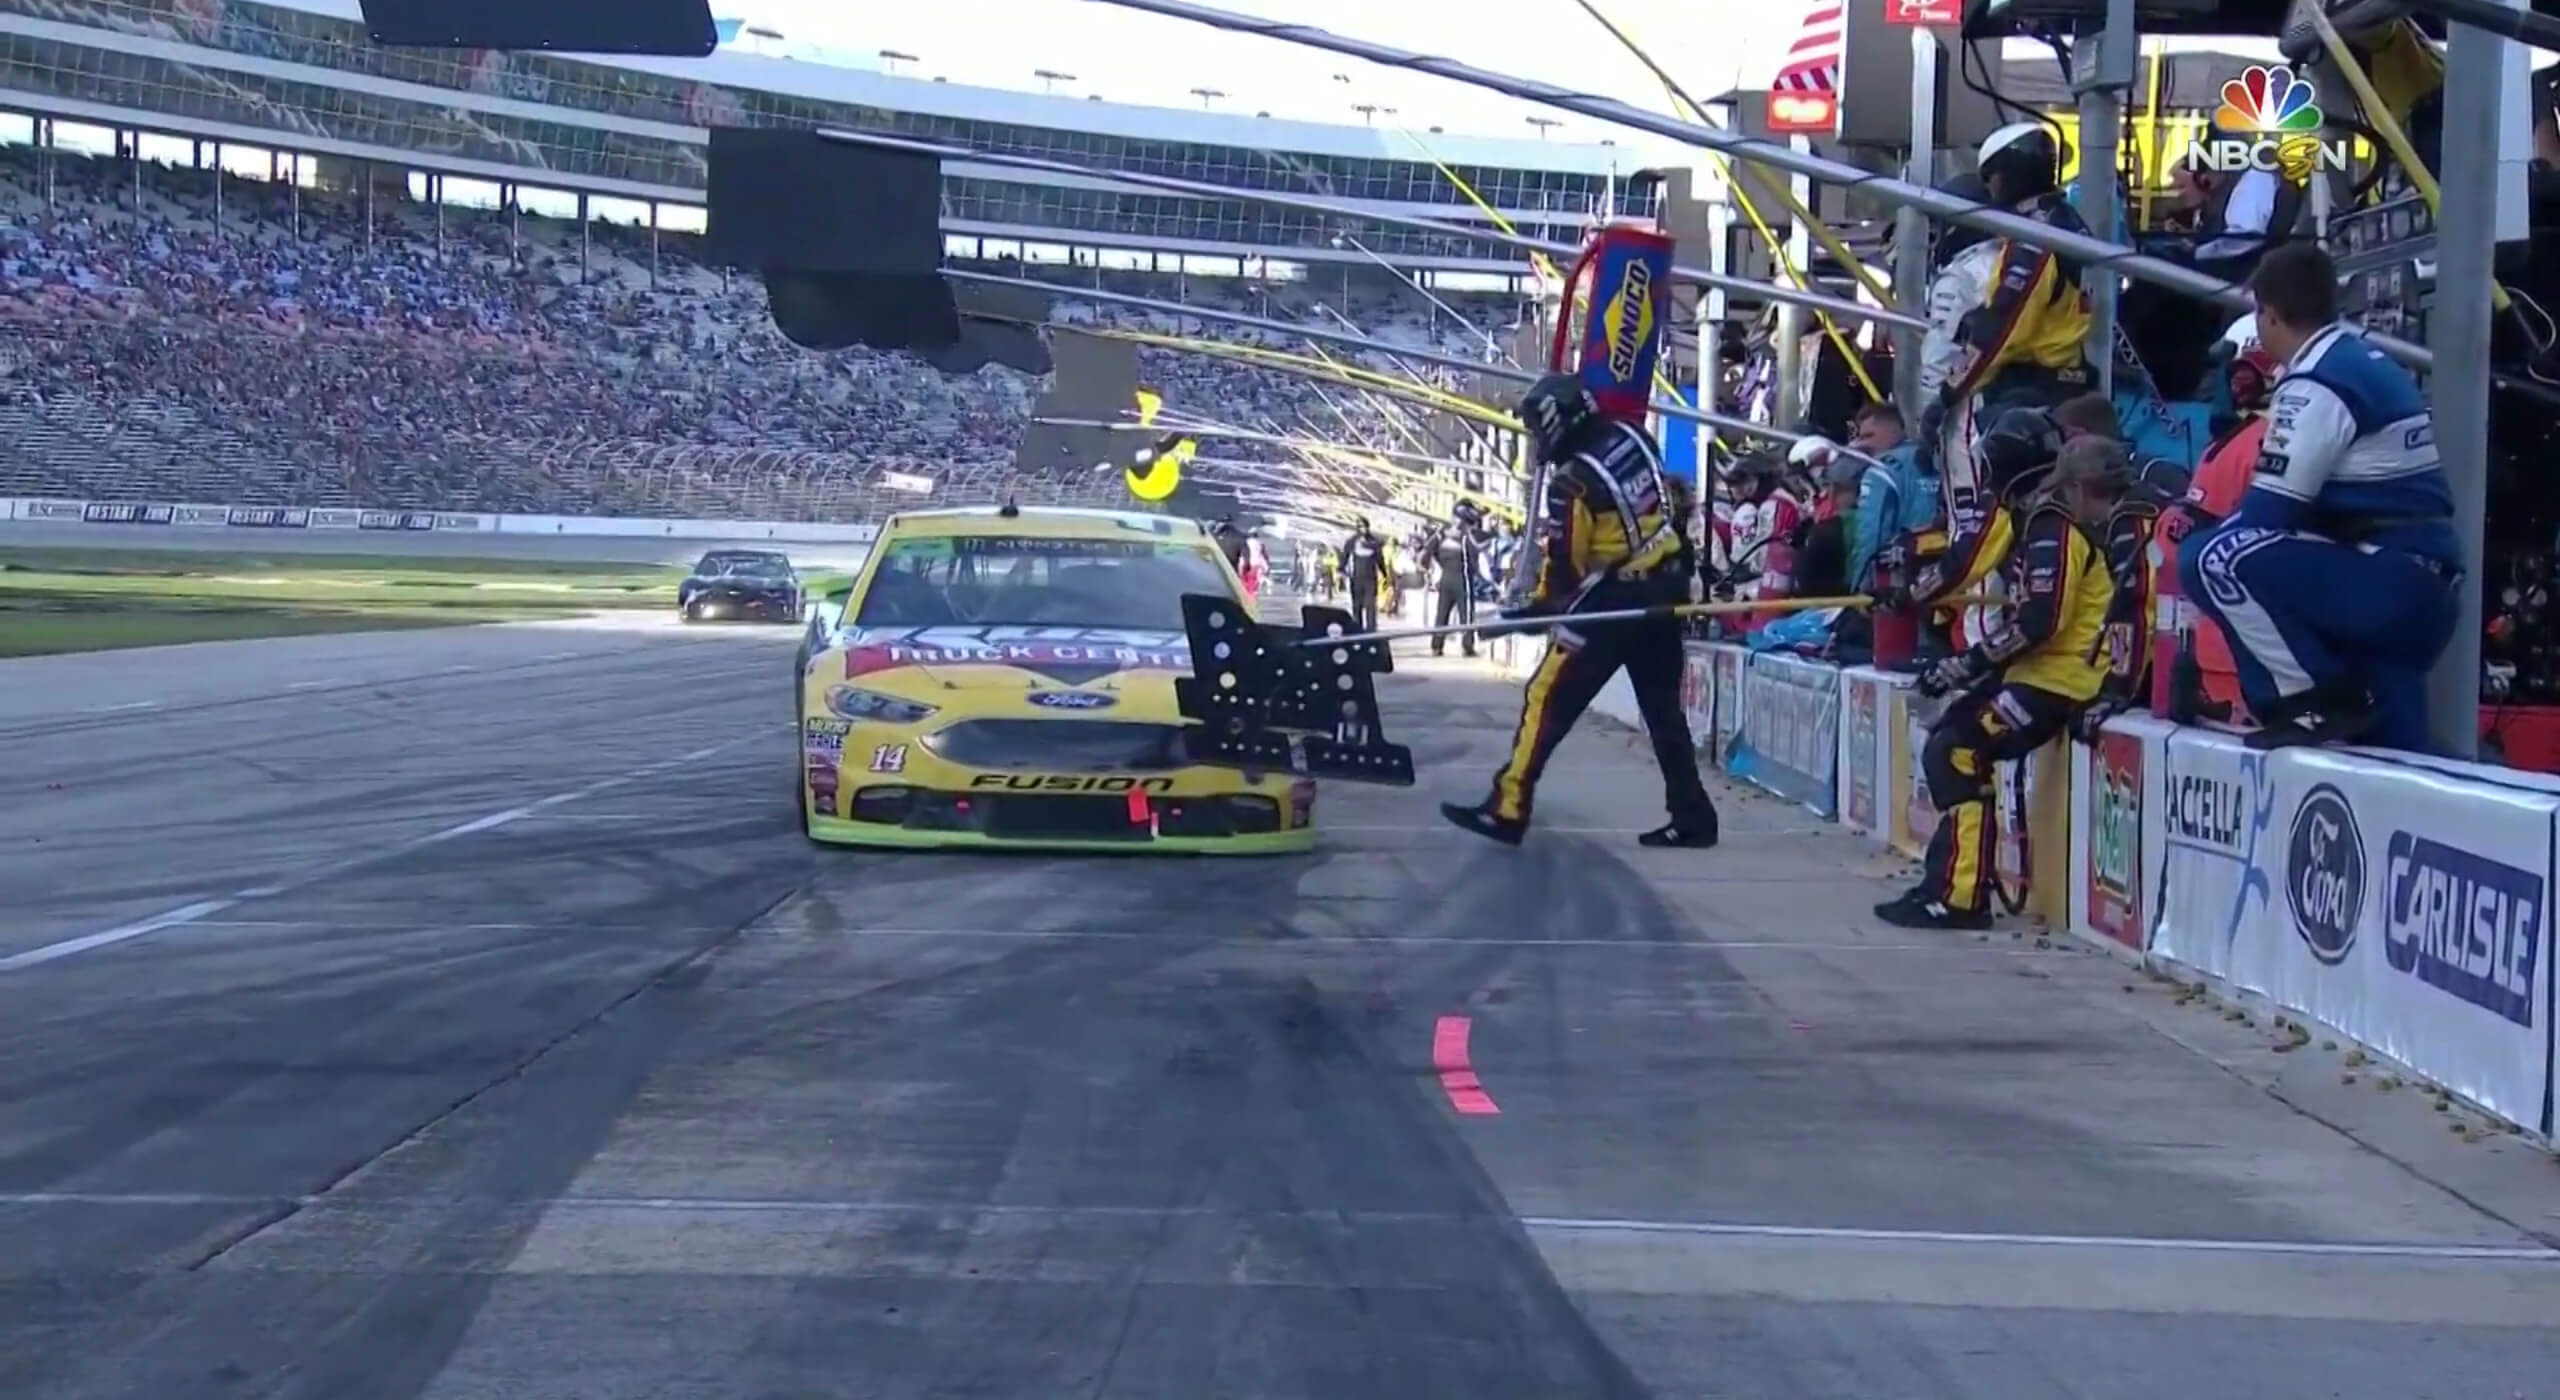 A crew member sitting on the wall resulted in a penalty for Clint Bowyer at Texas